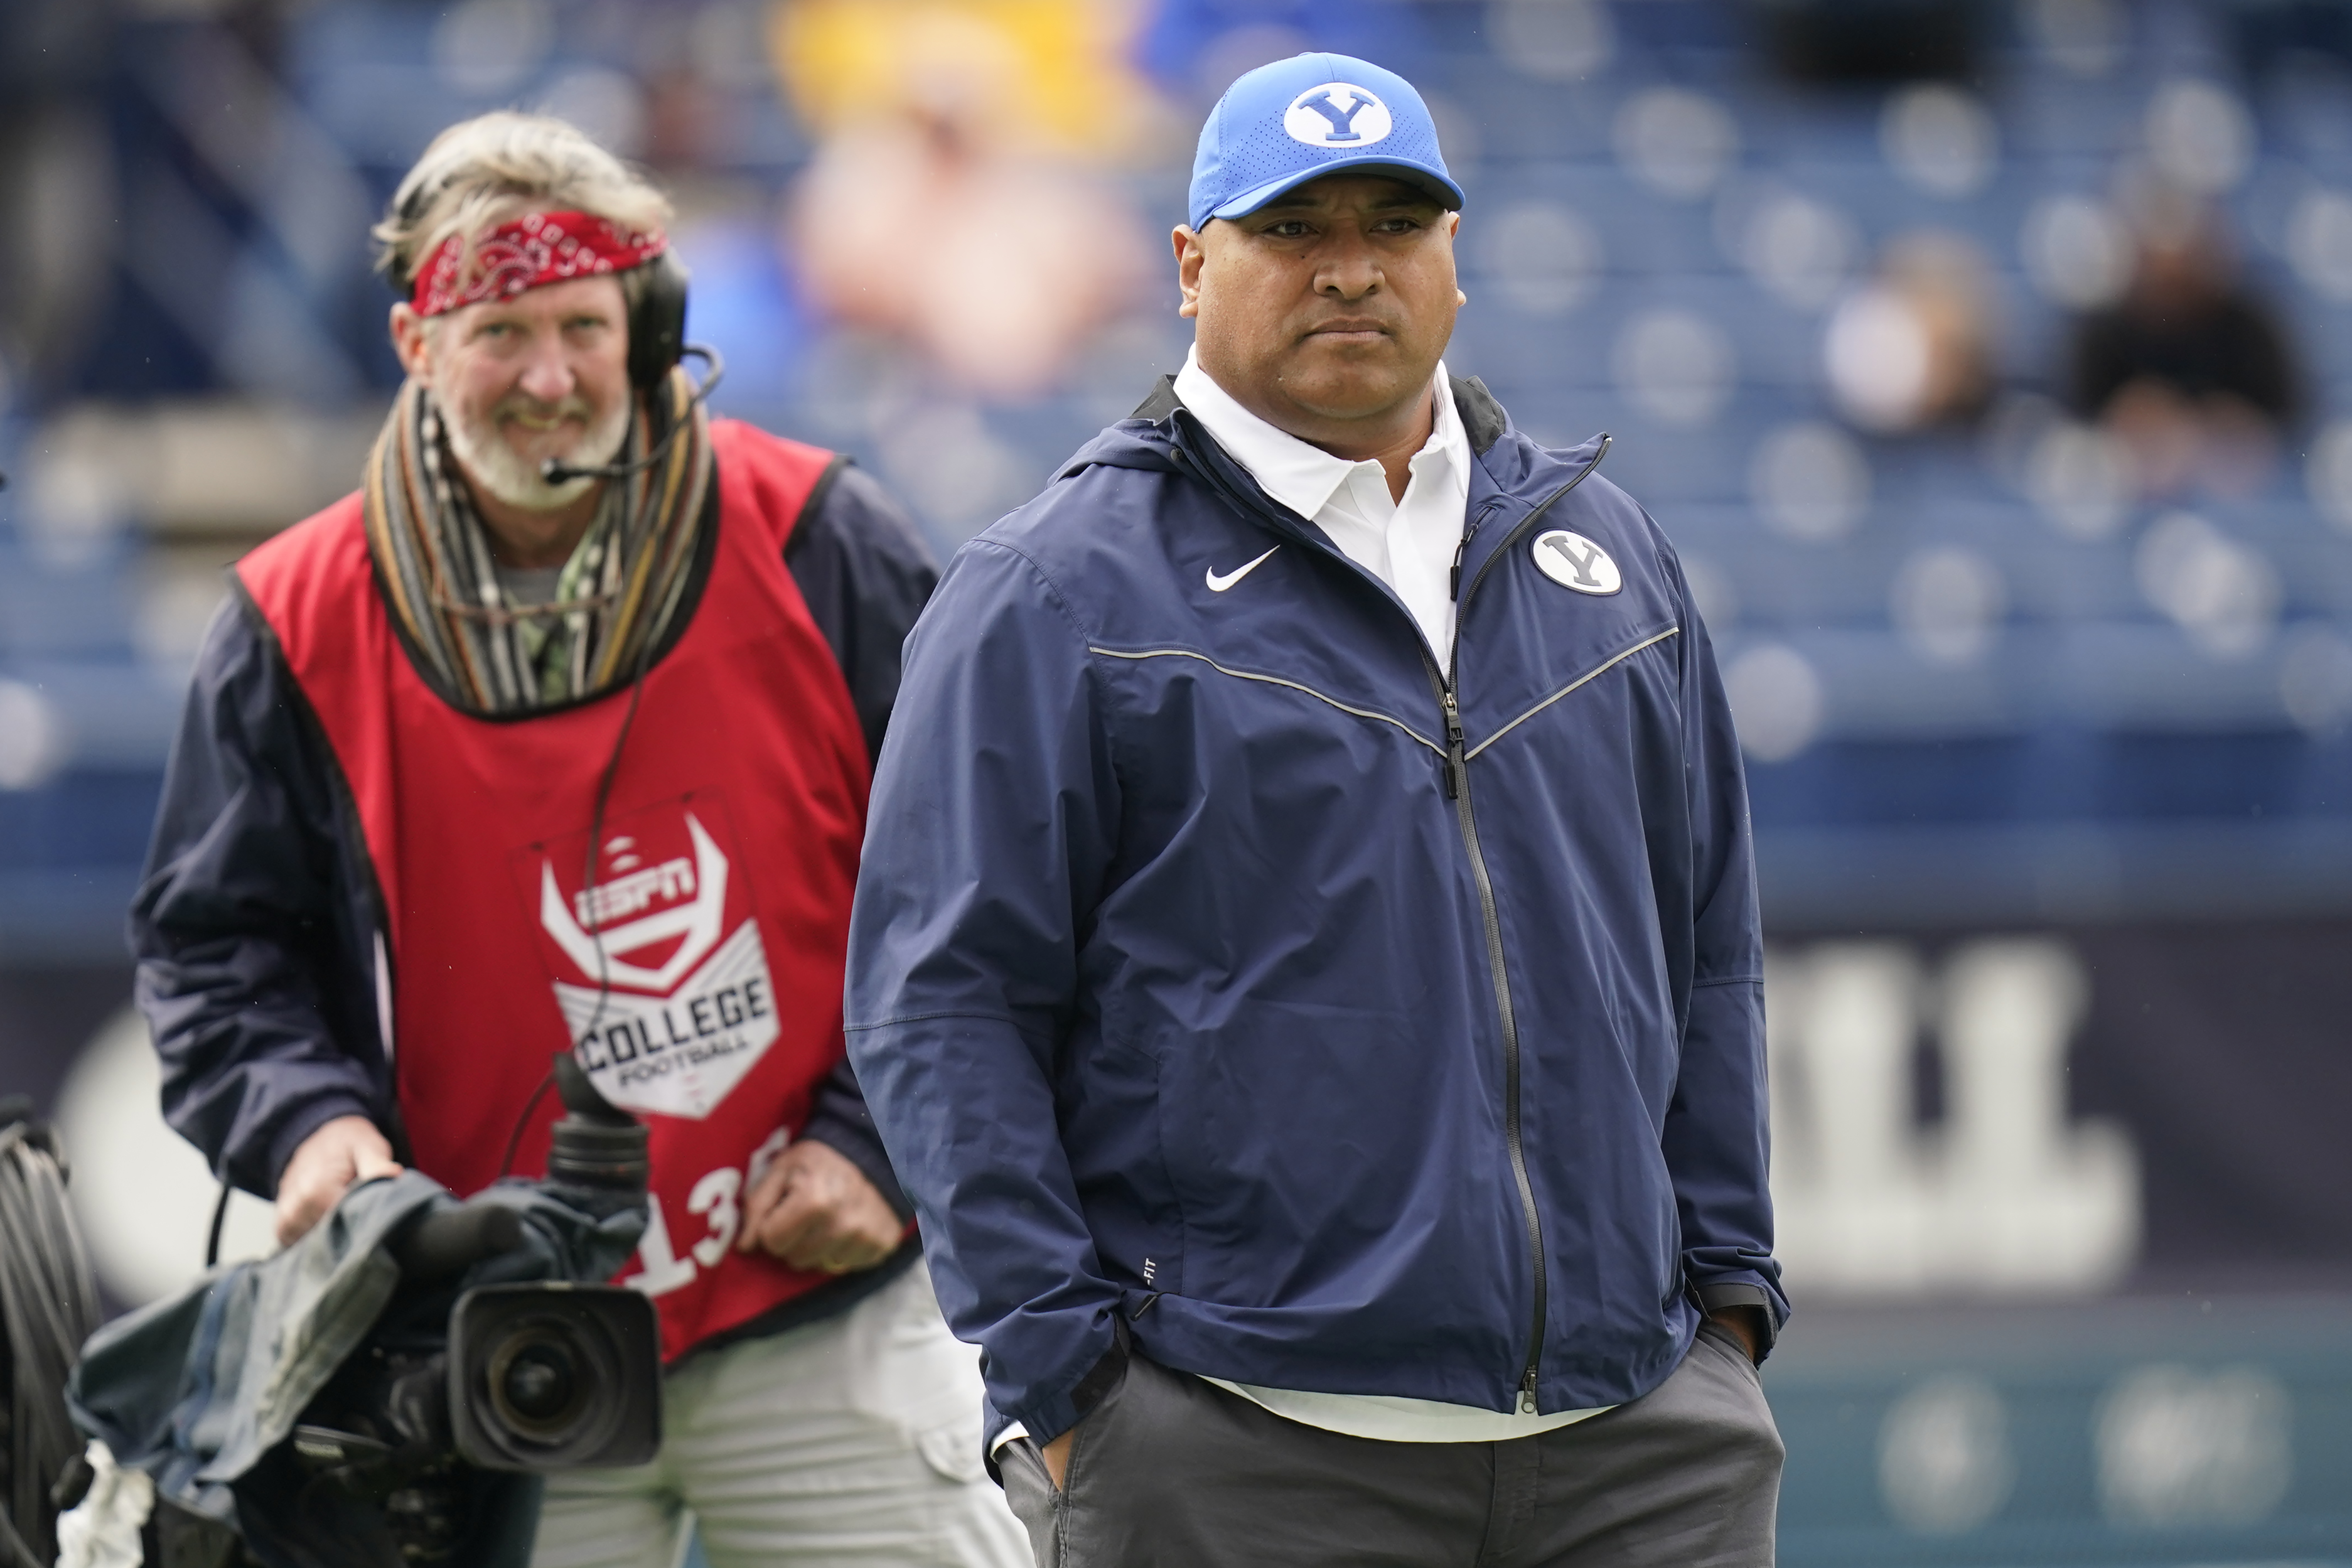 BYU head coach Kalani Sitake looks on before the start of their game against Boise State in Provo, Utah, Oct. 9, 2021.